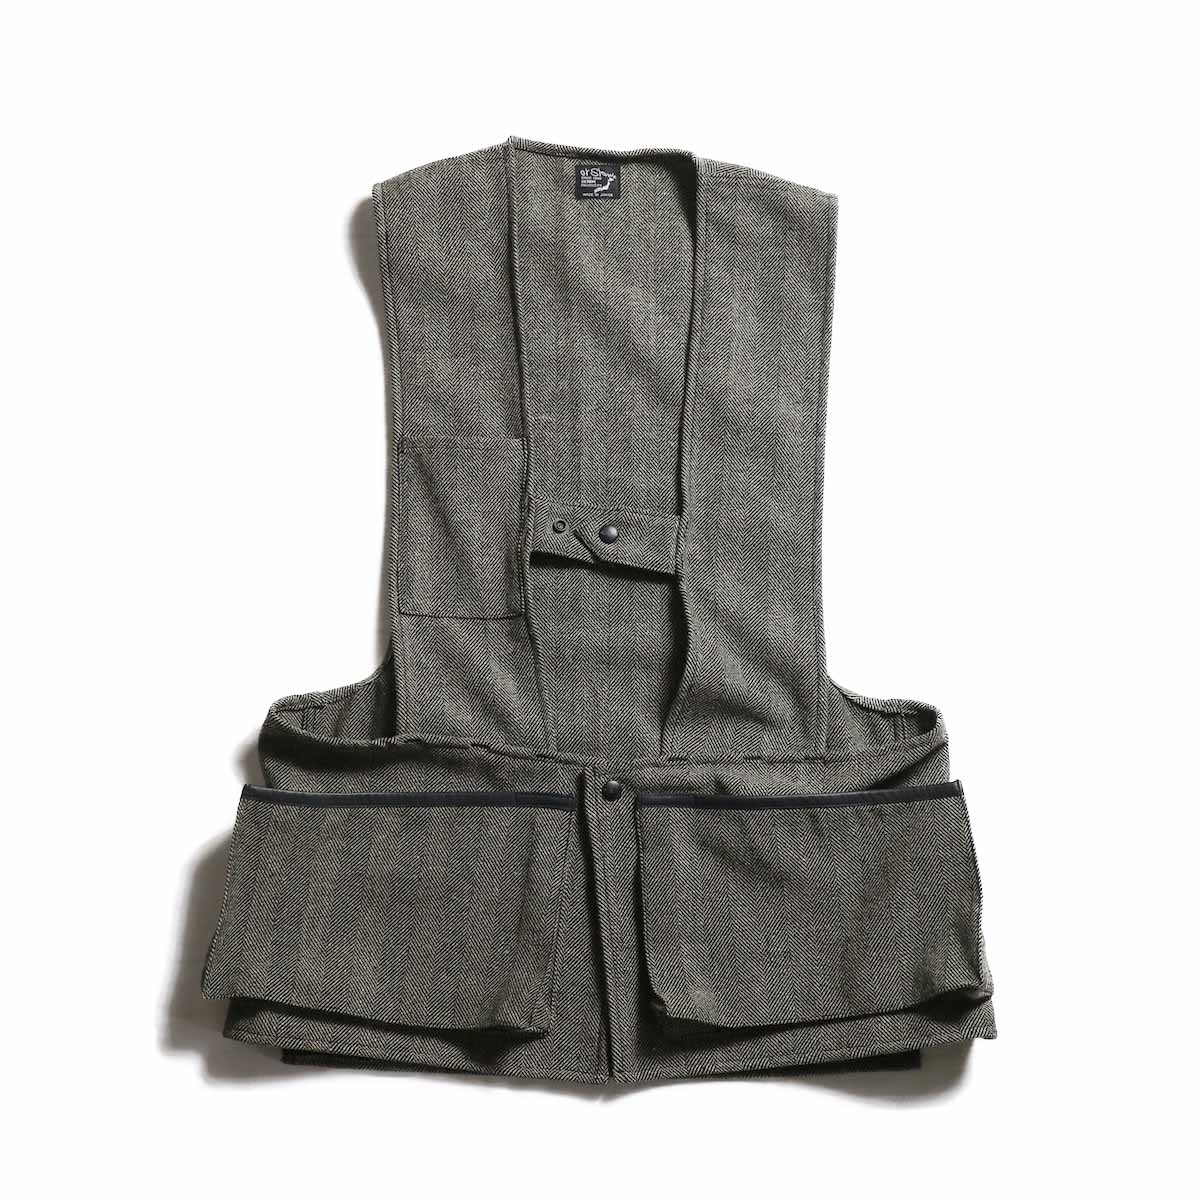 orSlow / Hunting Vest -Melton Wool Herringbone Twill(GRAY)